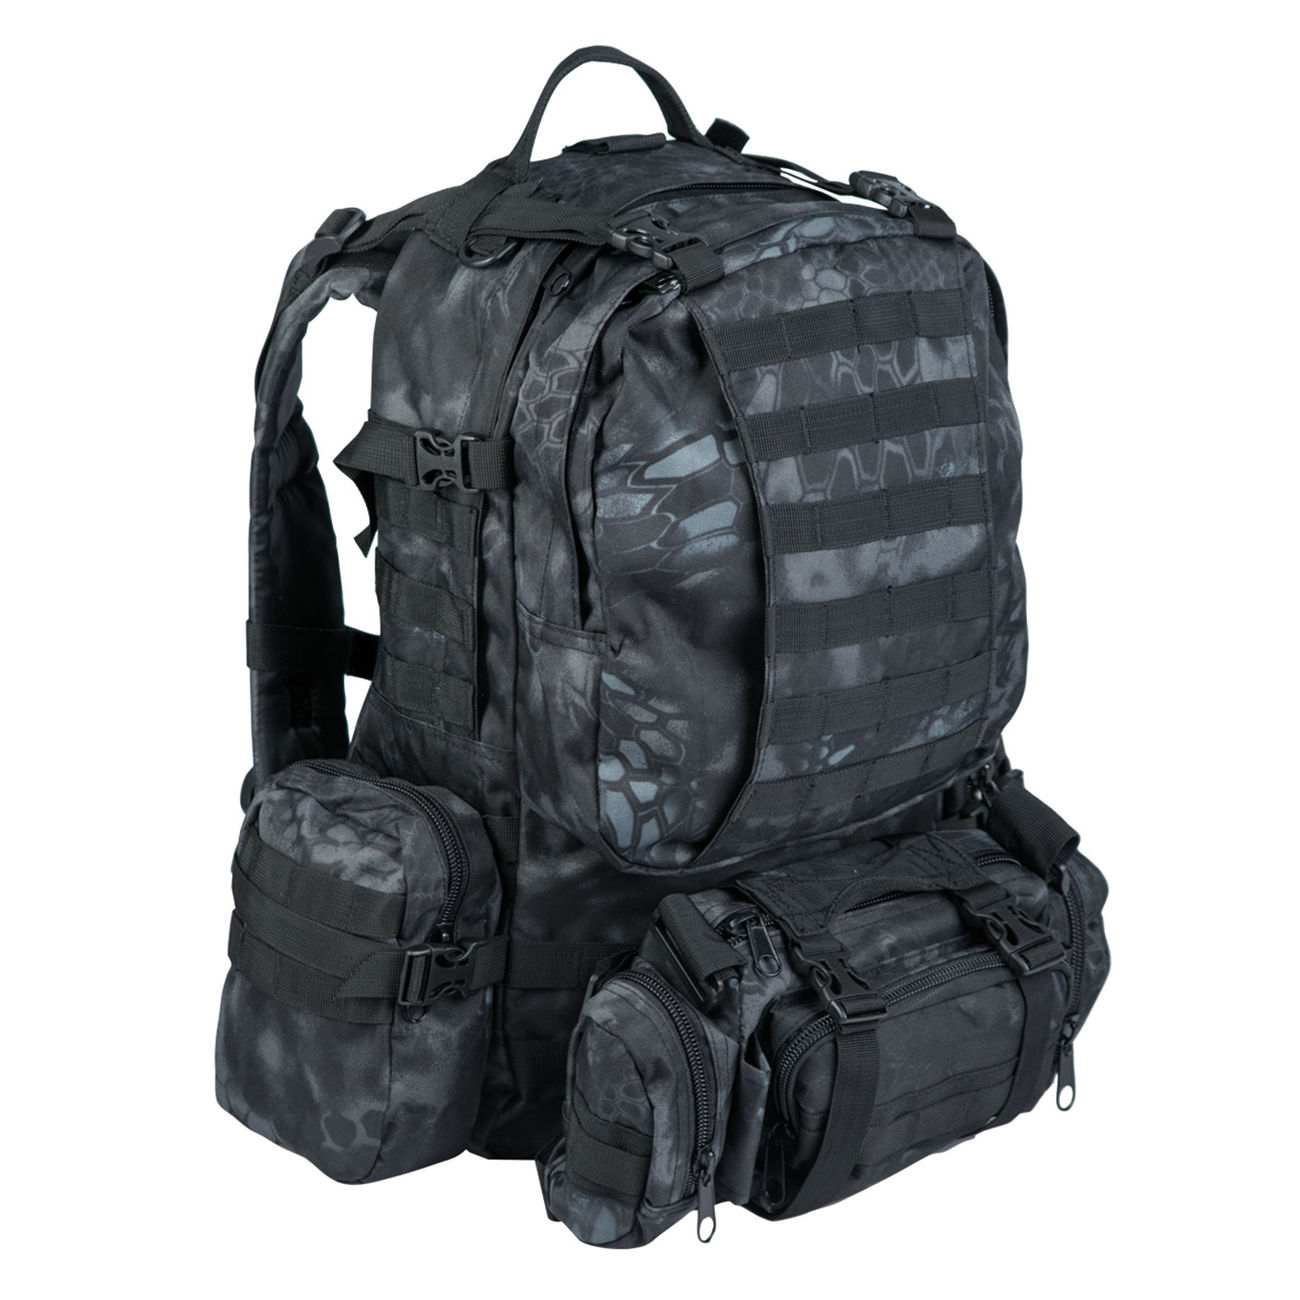 Mil-Tec Rucksack Defense Pack Assembly 36 ltr. mandra night 0